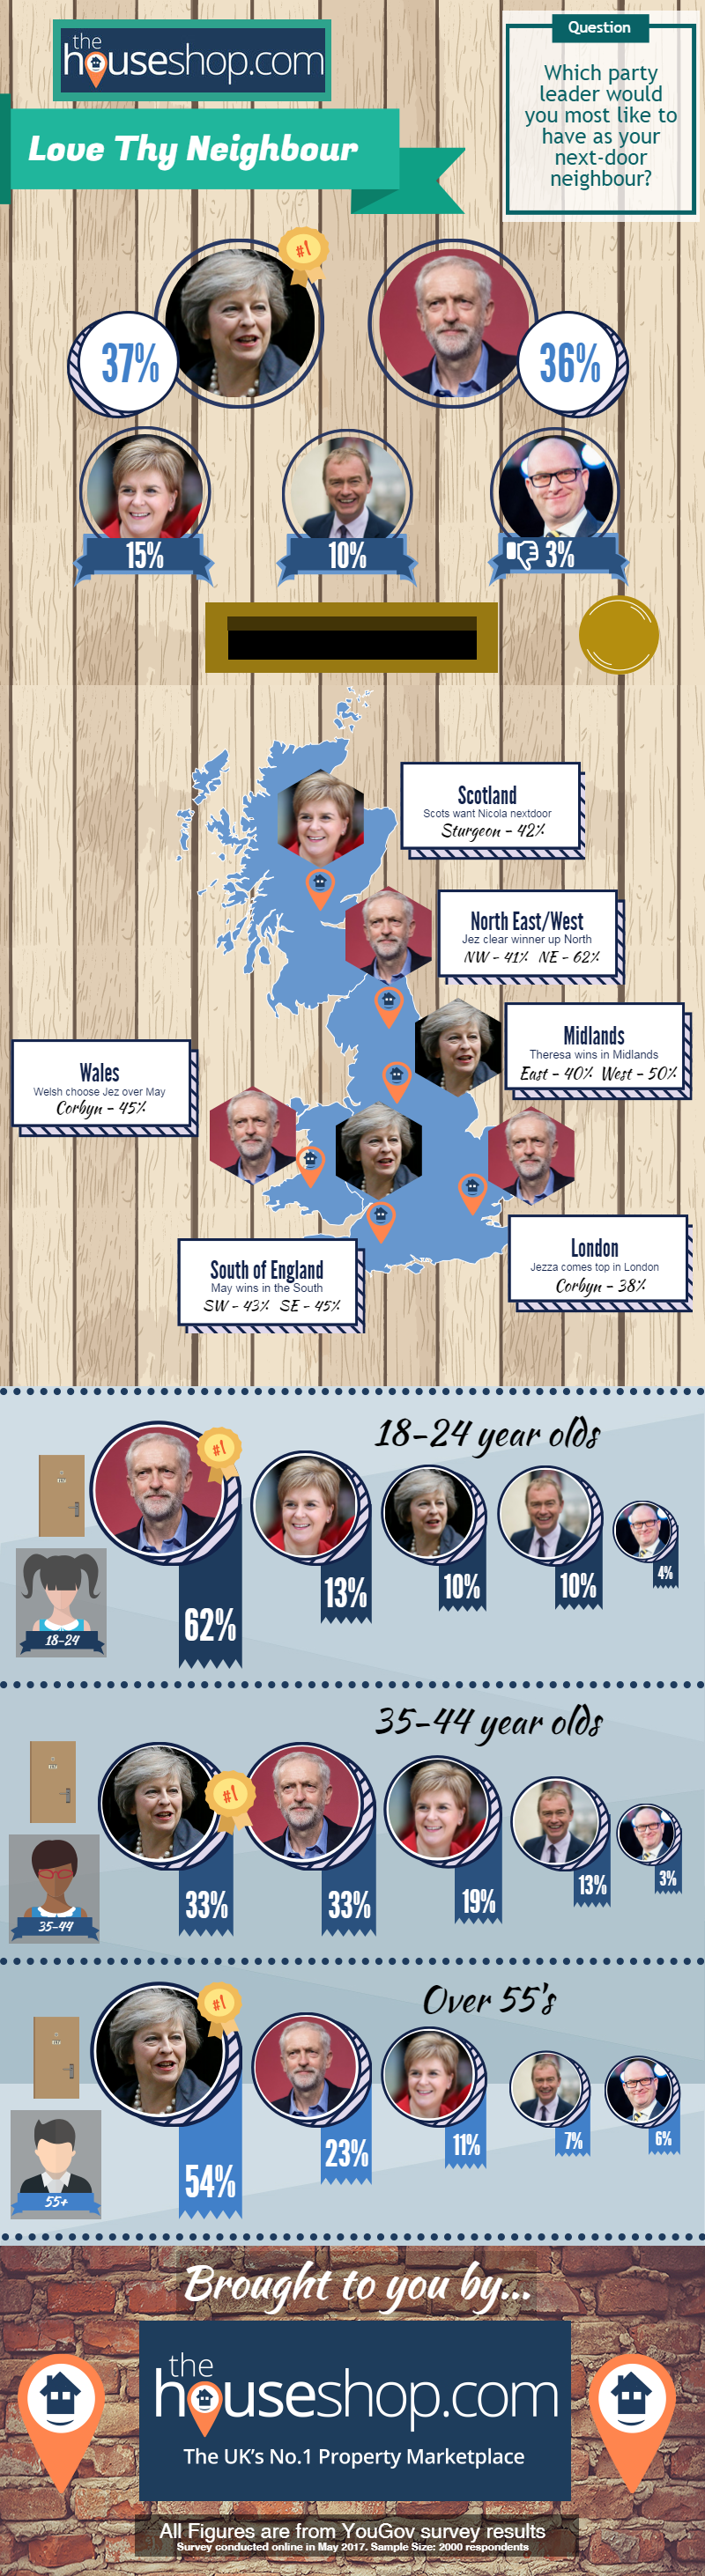 Party Leader Neighbours Infographic 2017